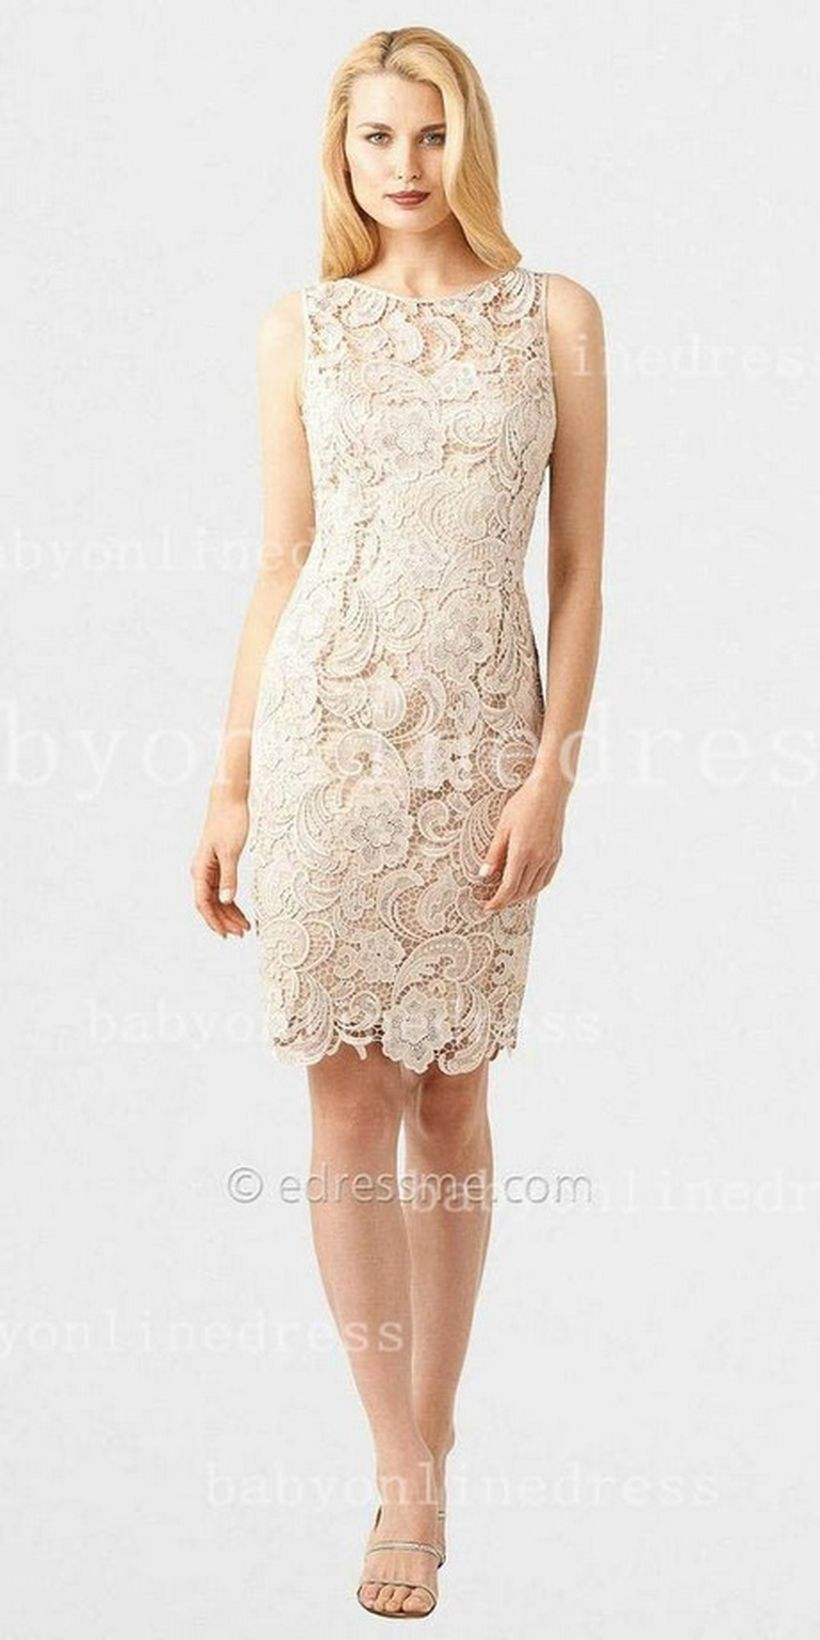 Awesome teens short dresses ideas for graduation outfits 88